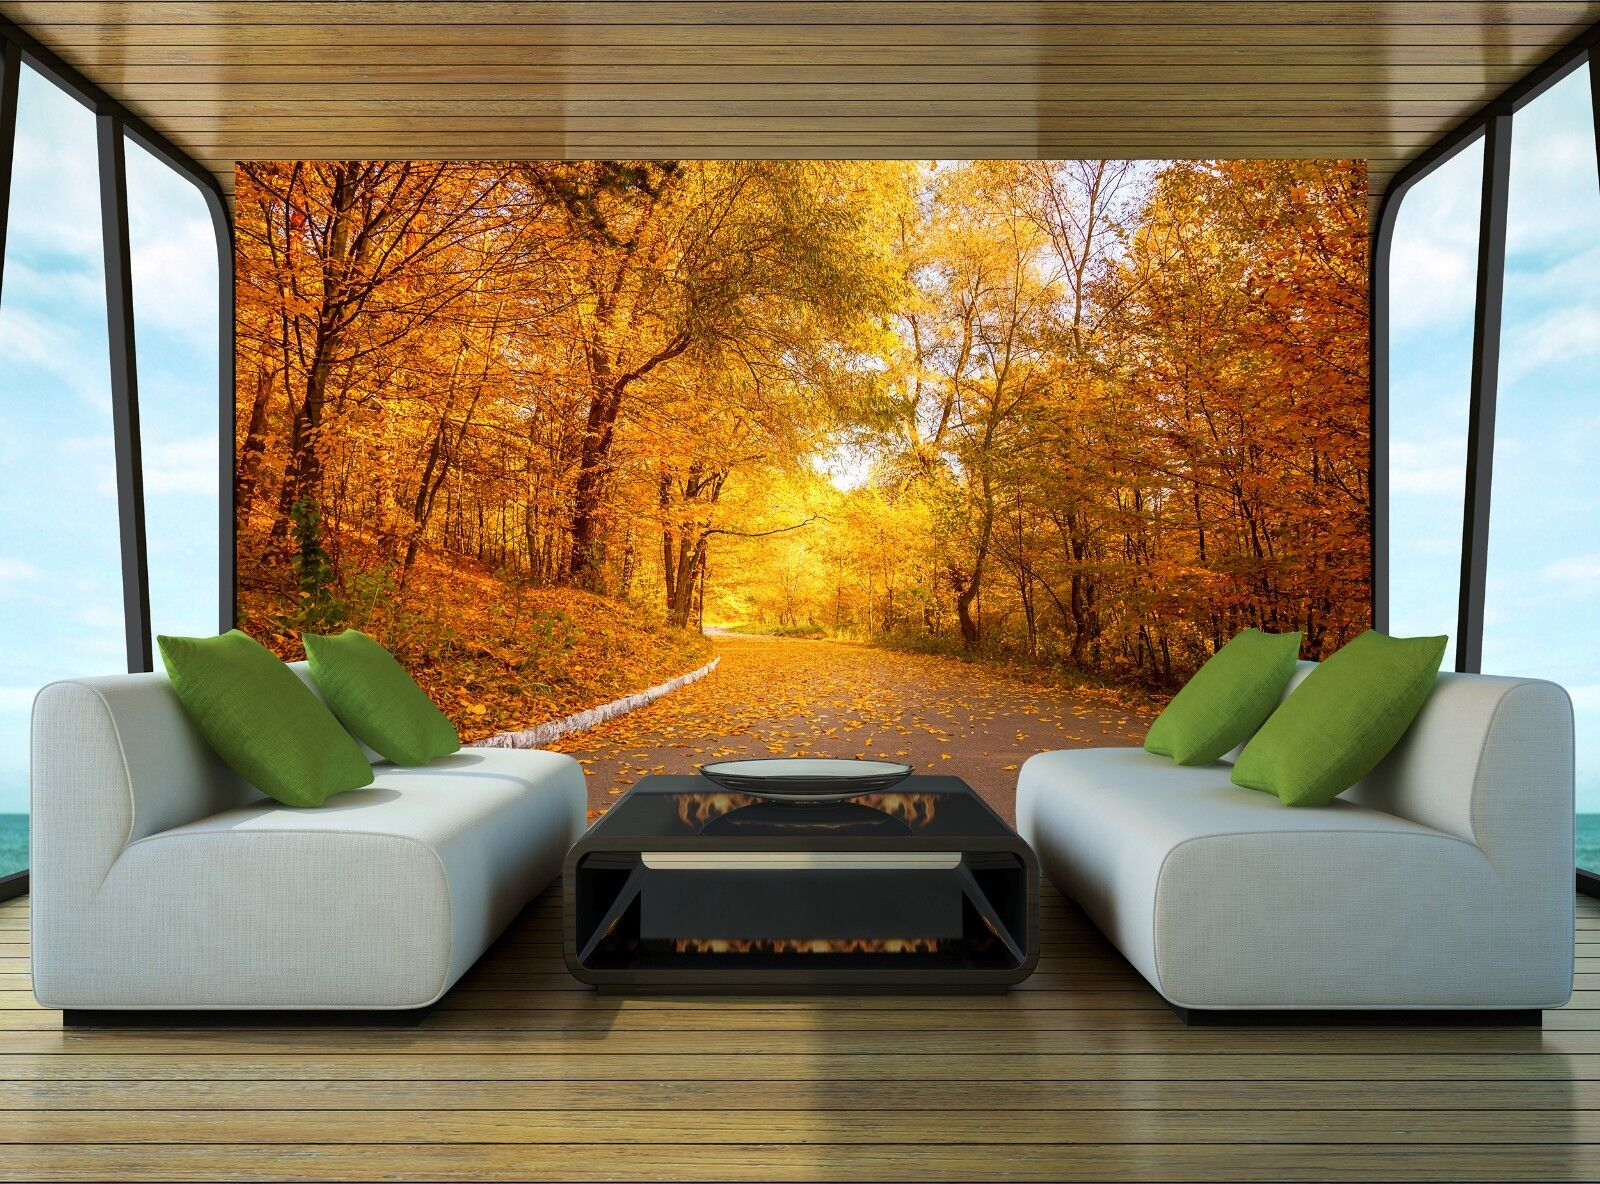 Gelb Trees and alley Wall Mural Photo Wallpaper GIANT WALL DECOR Paper Poster